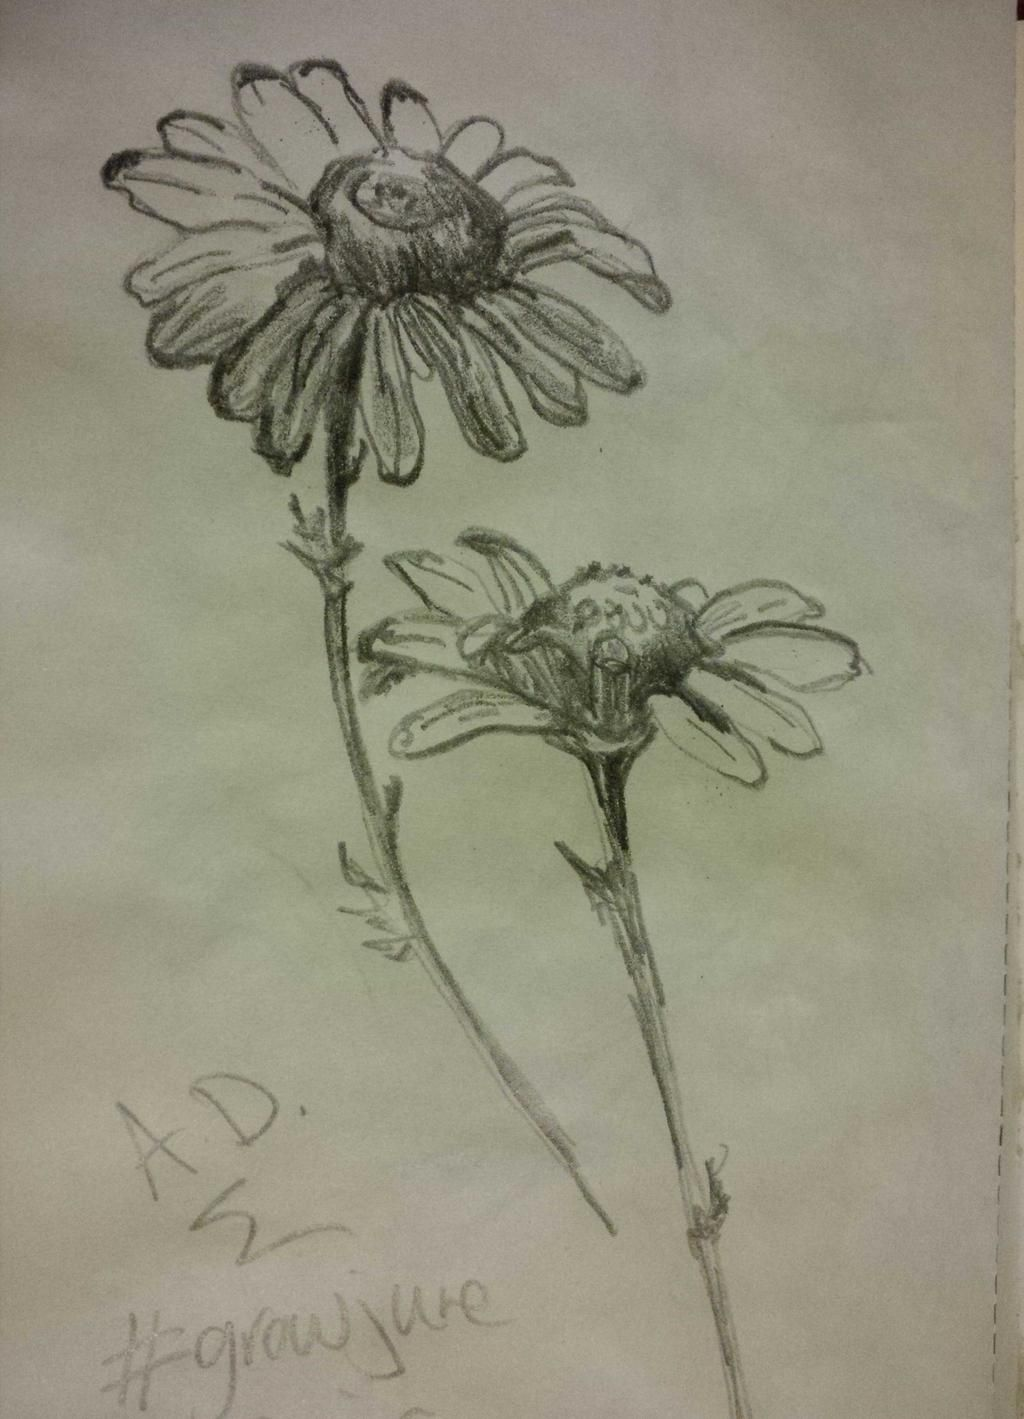 More daisy quick sketches #growjune #thedailysketch #drawing